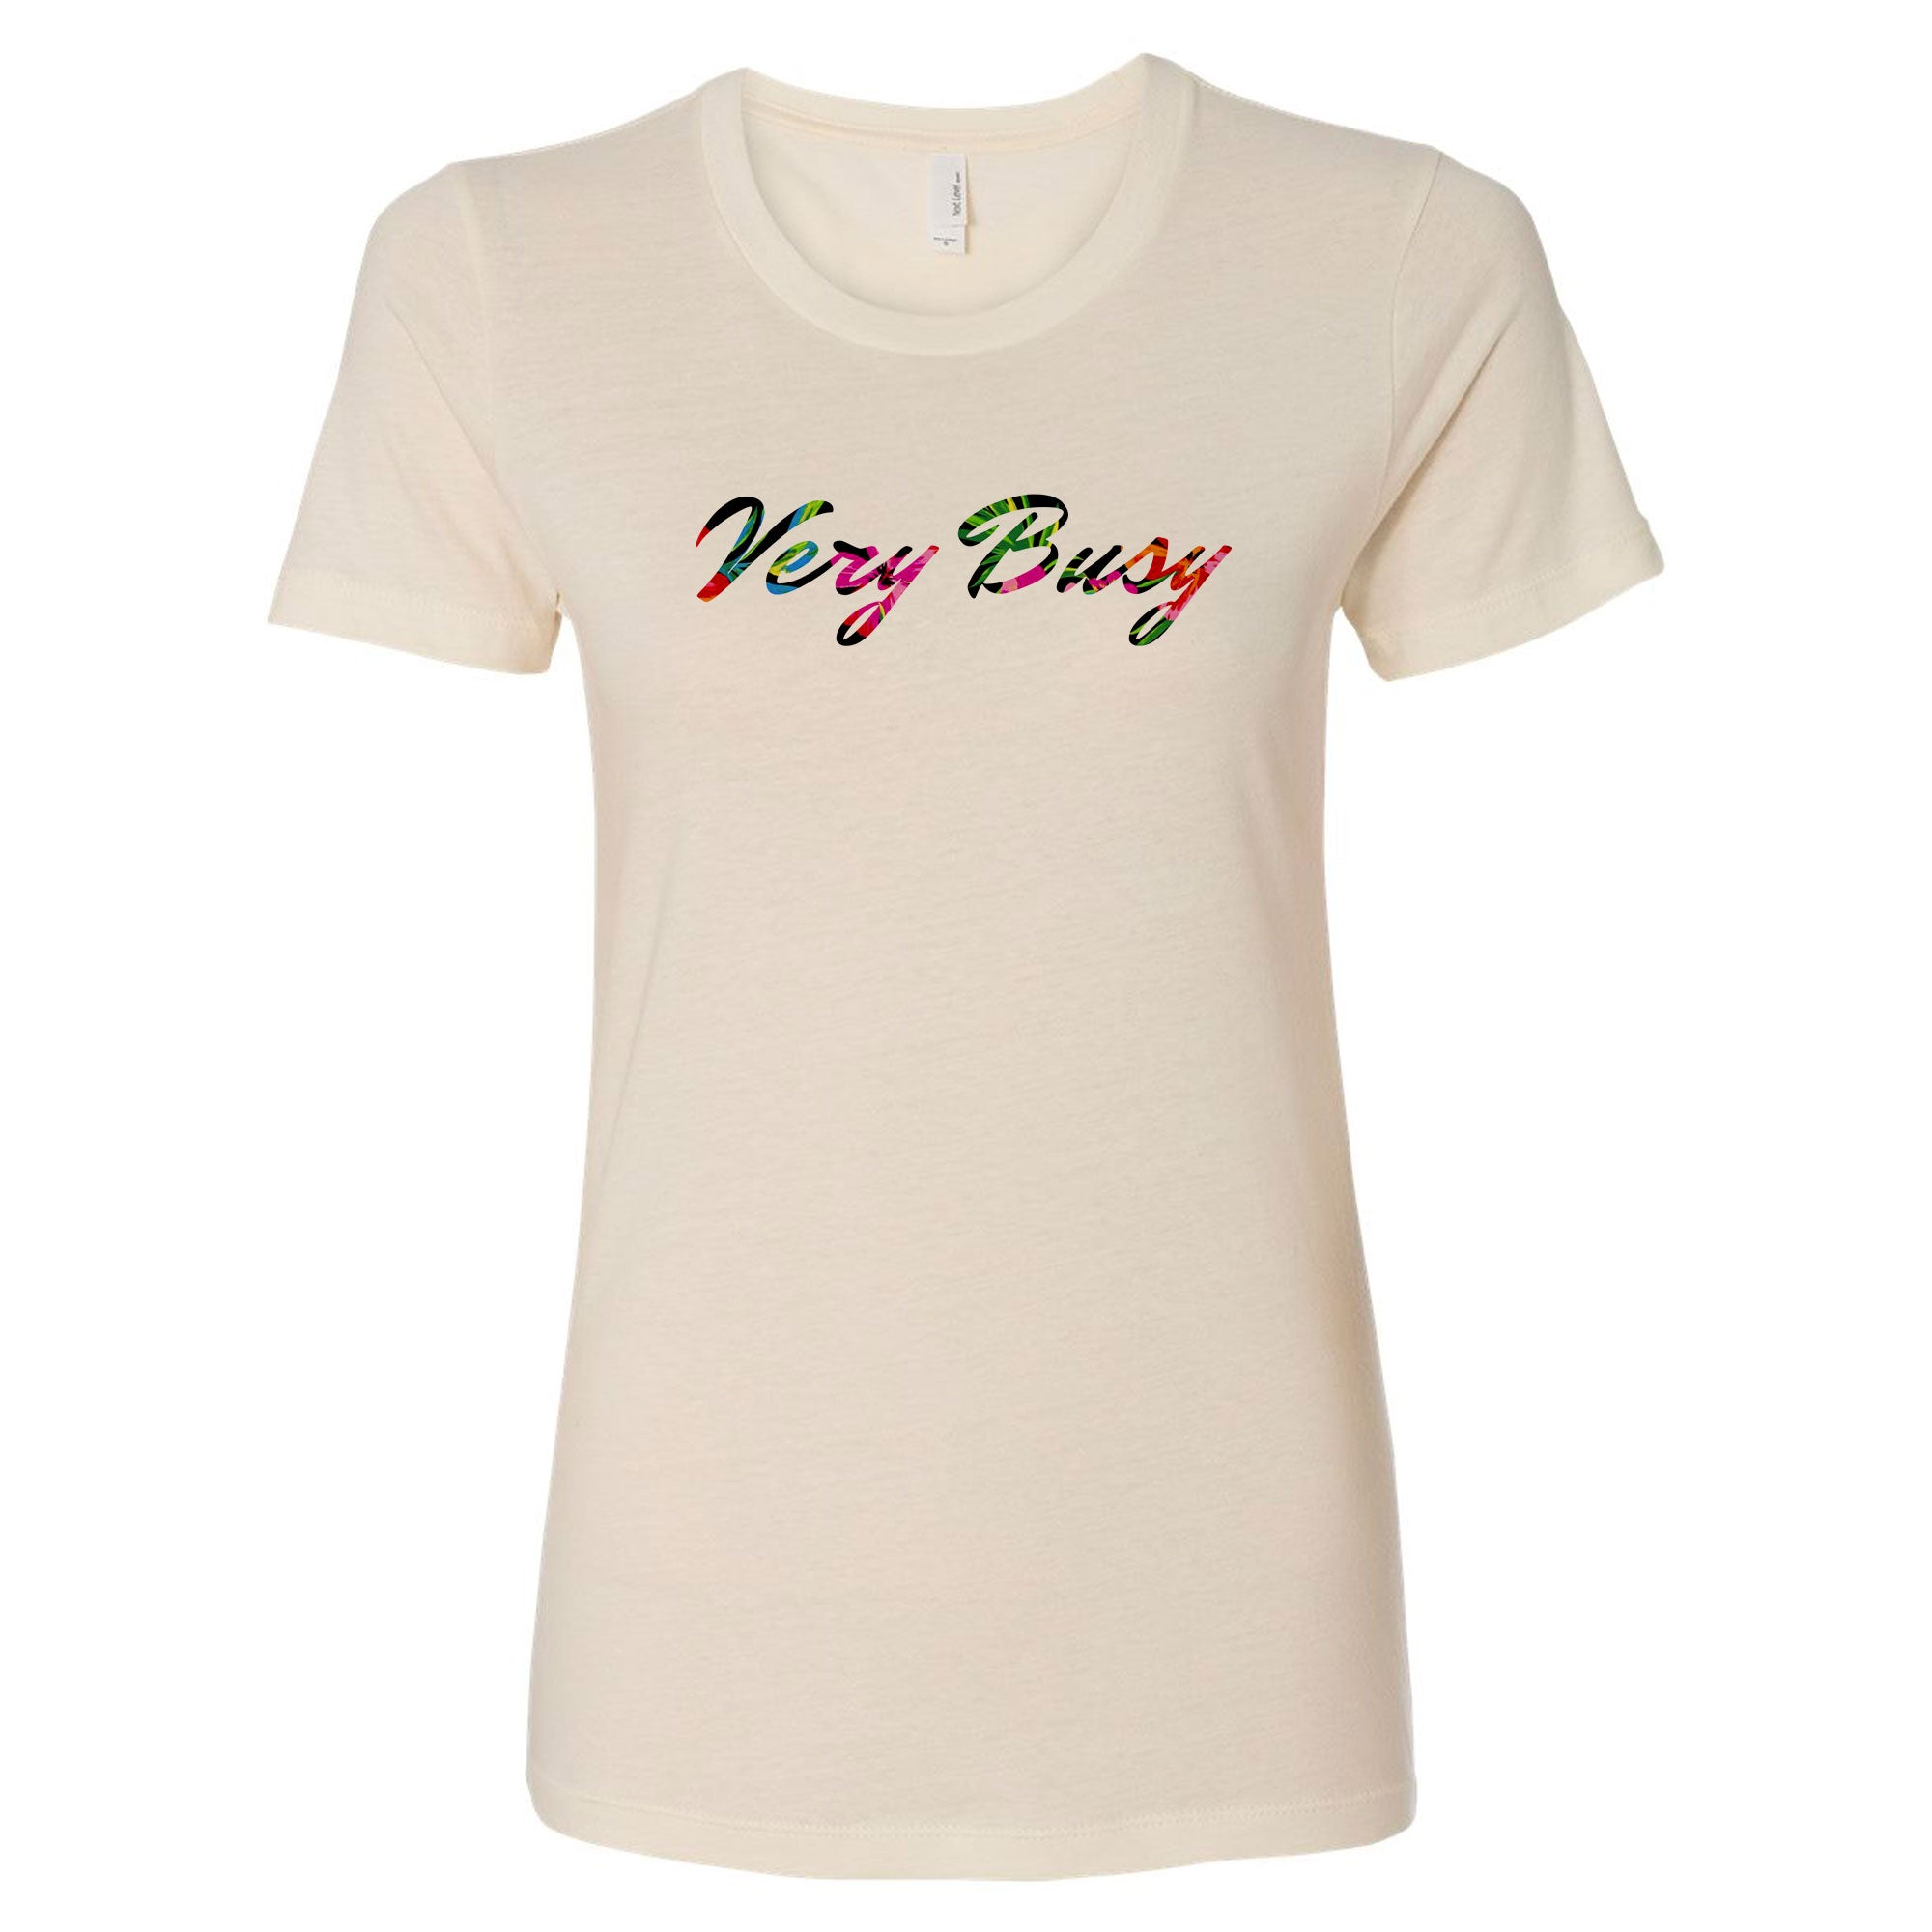 Very Busy Women's Tee - Work Smarter Lifestyle